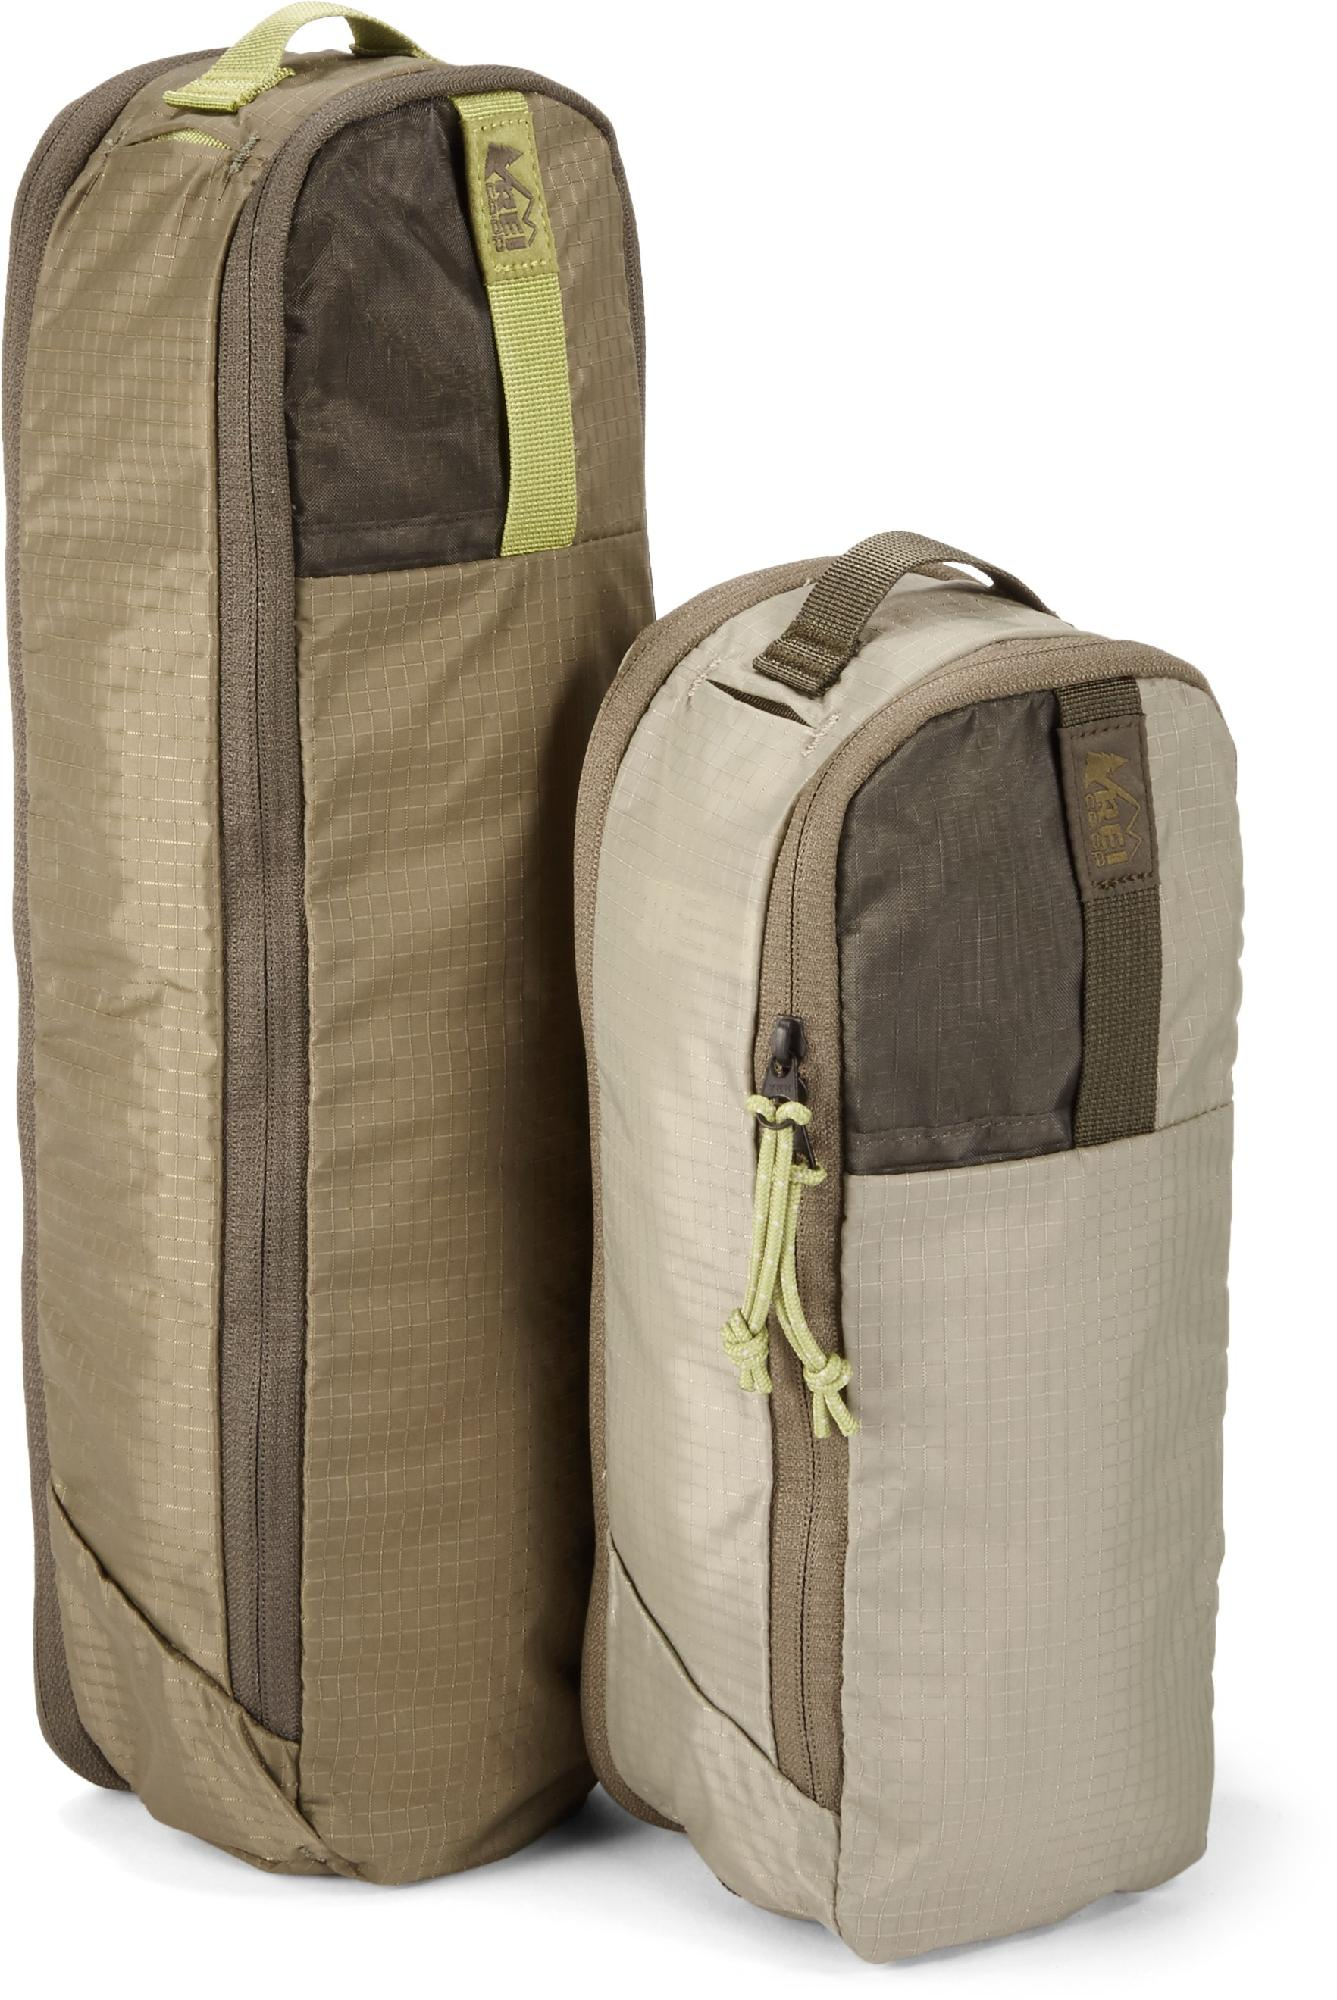 REI Co-op Expandable Packing Cube Set - Small/Large